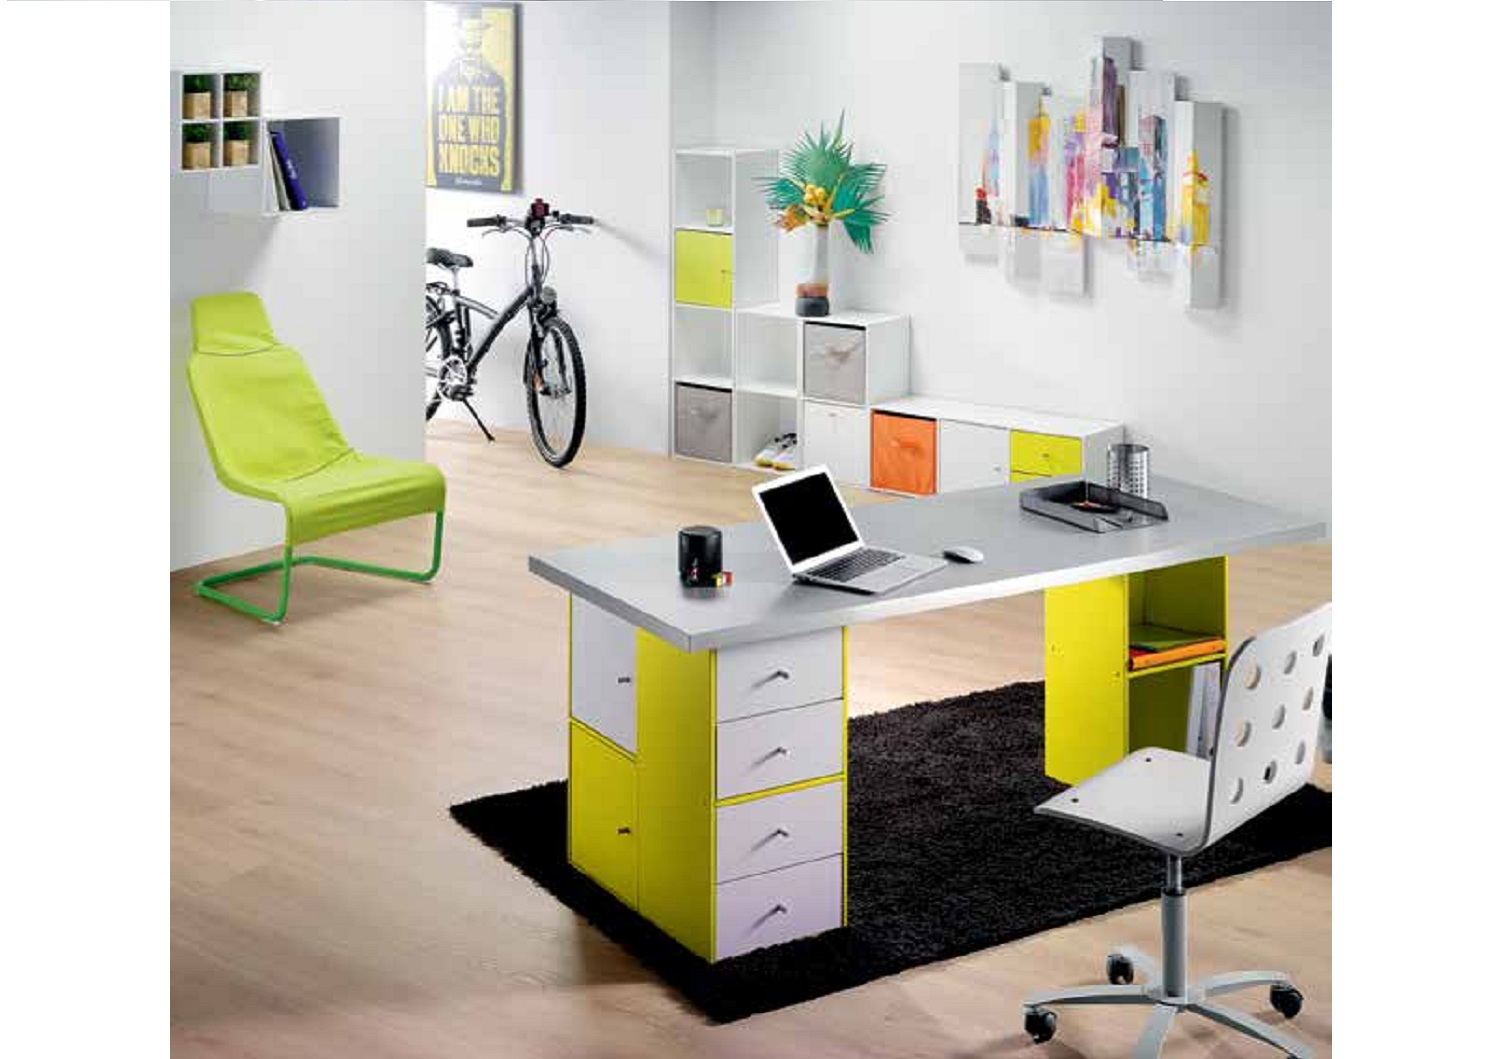 Bilrich Furniture - Multi Kaz Storage Furniture